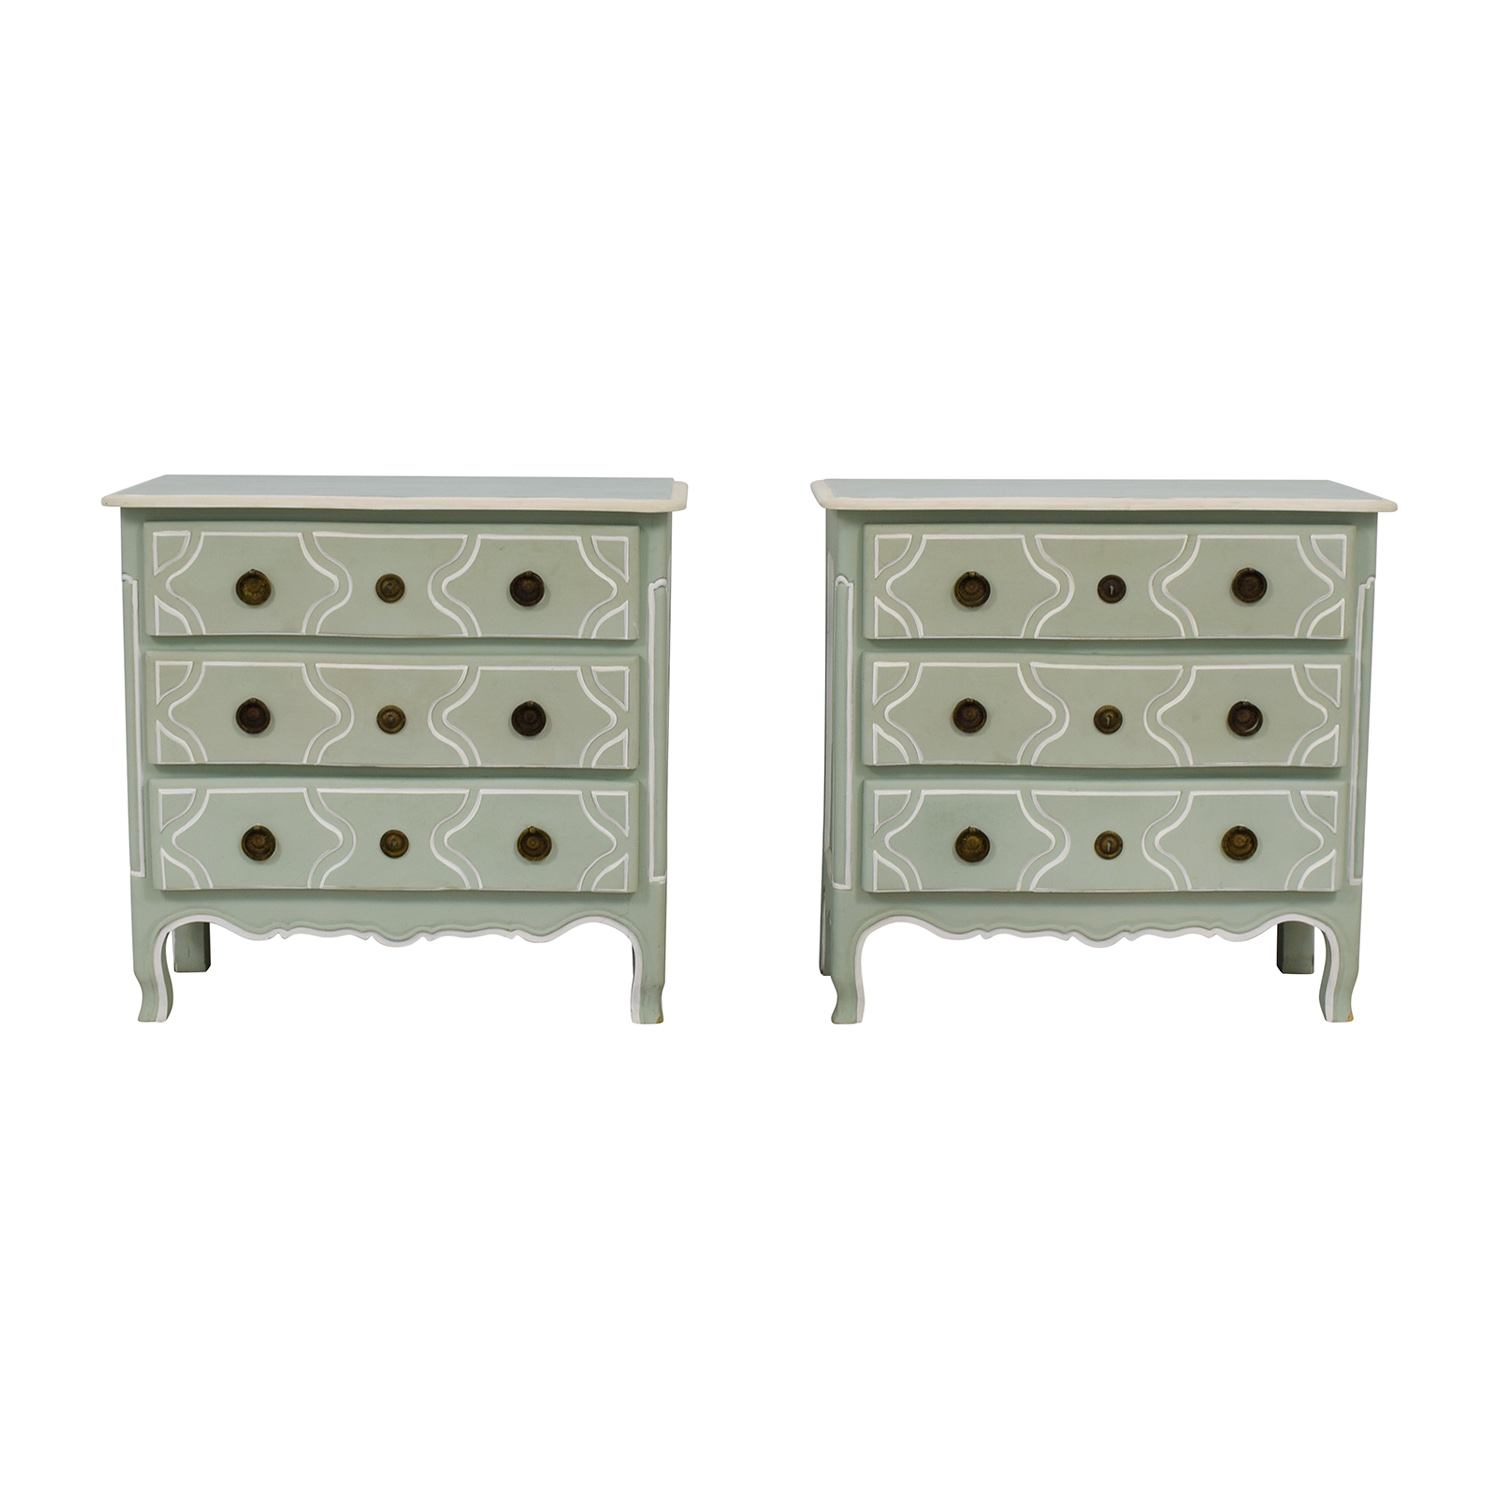 shop Achicha Achicha Sage Green and White Three-Drawer Dressers online